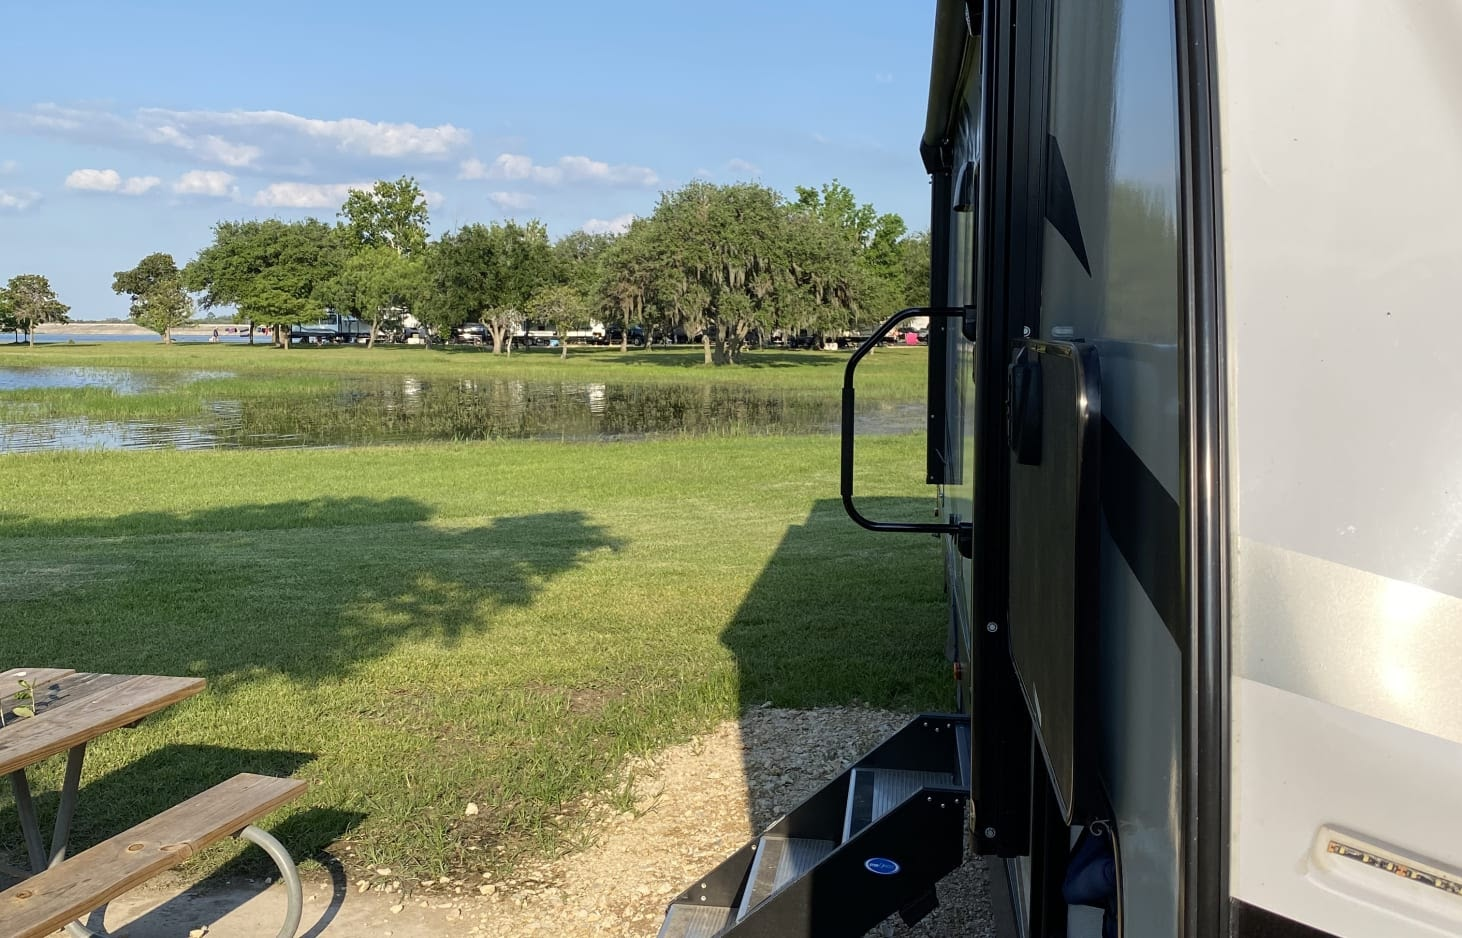 glamping in tx - RV set up at a campground.